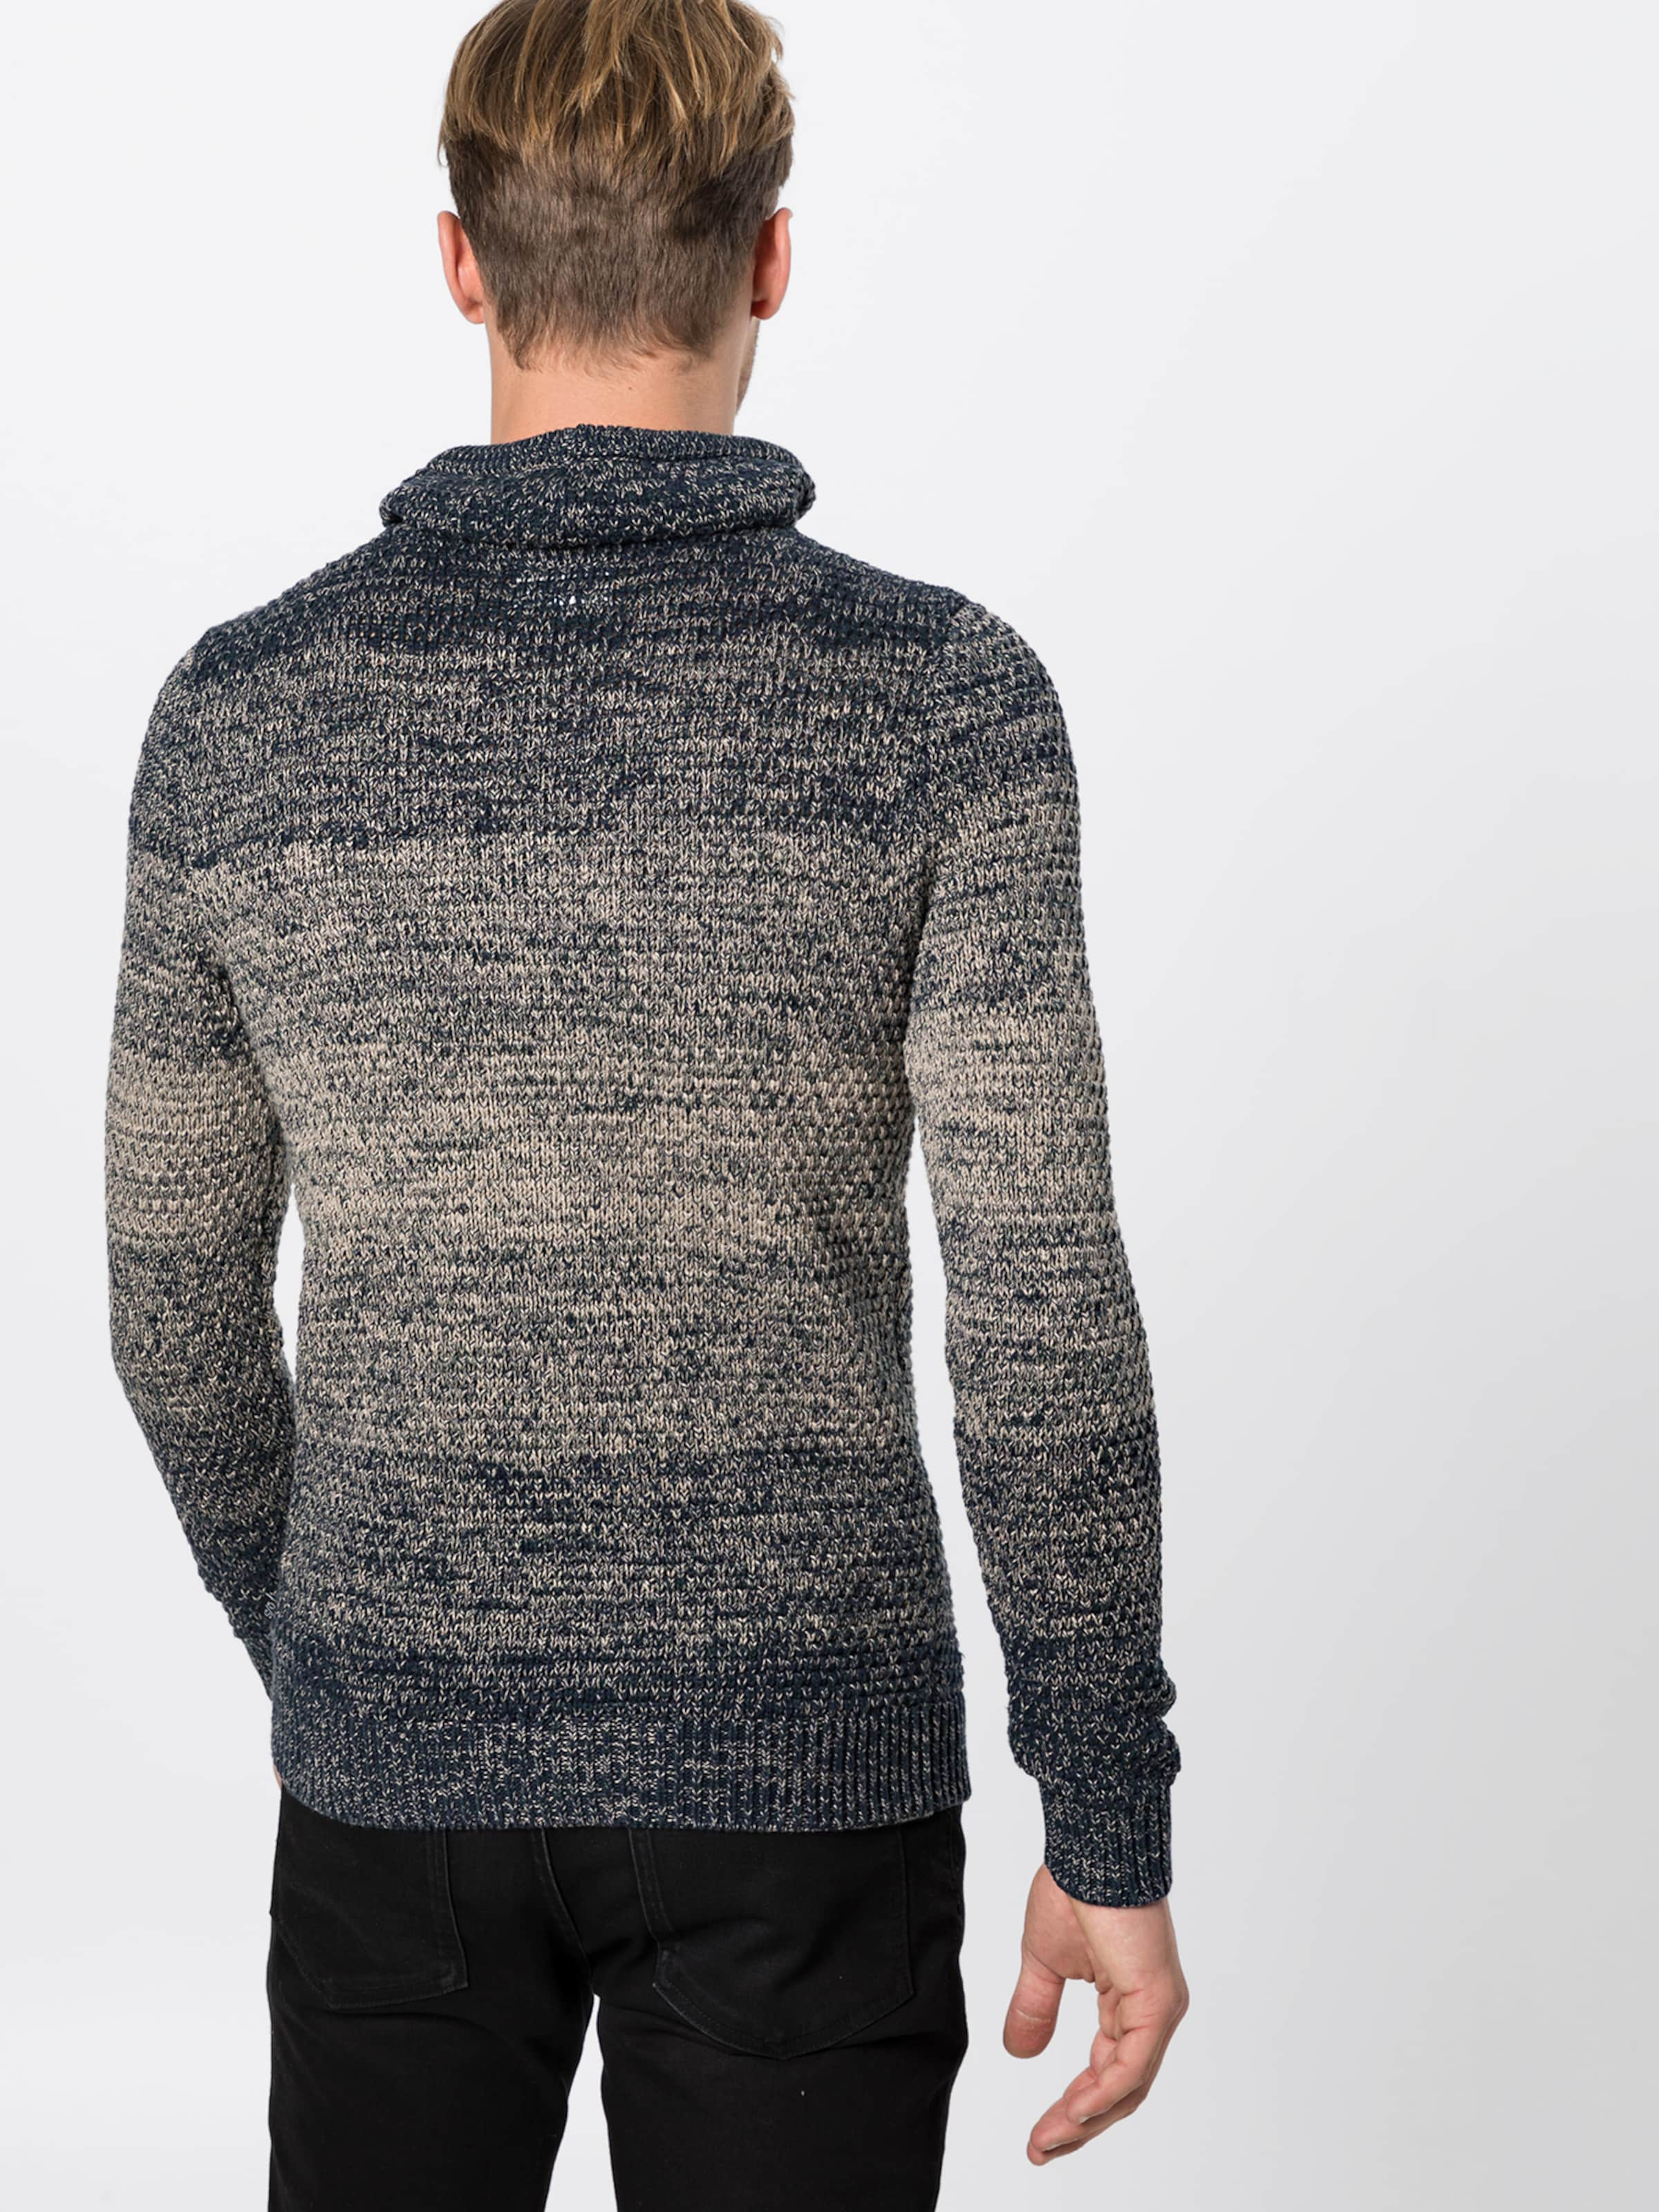 s Q In Designed EnzianWollweiß Pullover By jSc4q35ARL